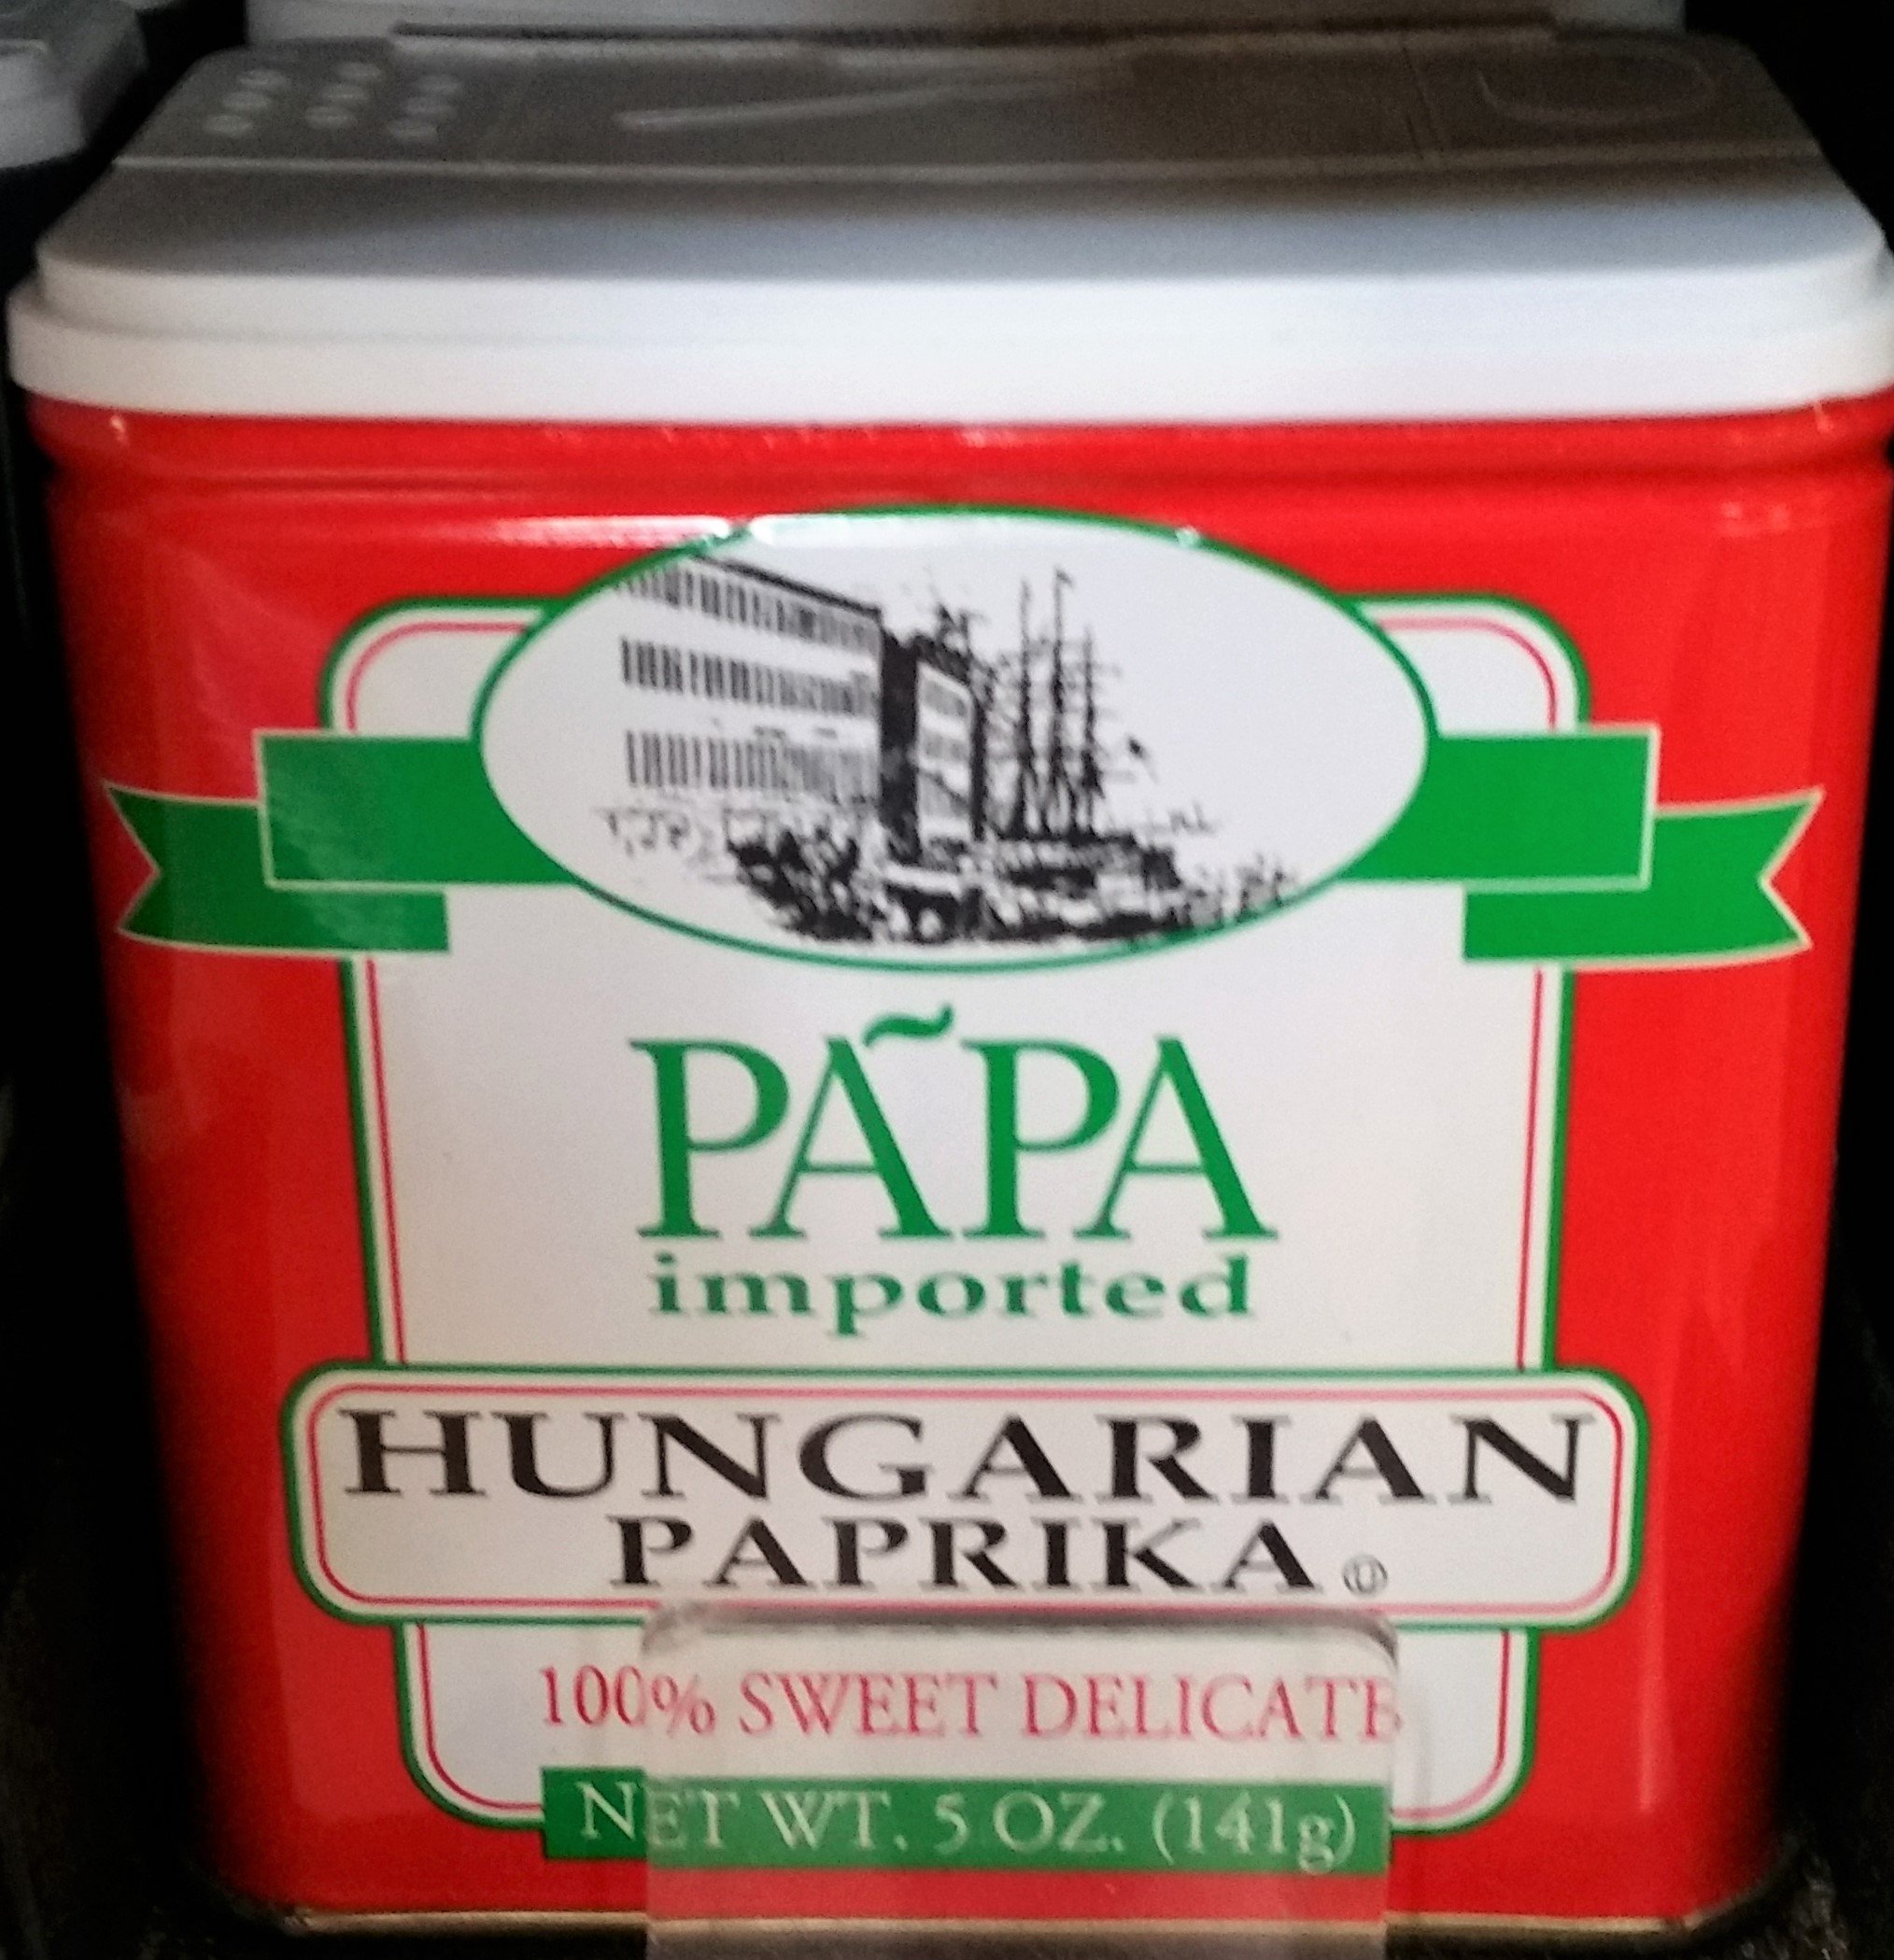 Papa Imported Hungarian Paprika 5 oz (Pack of 3)